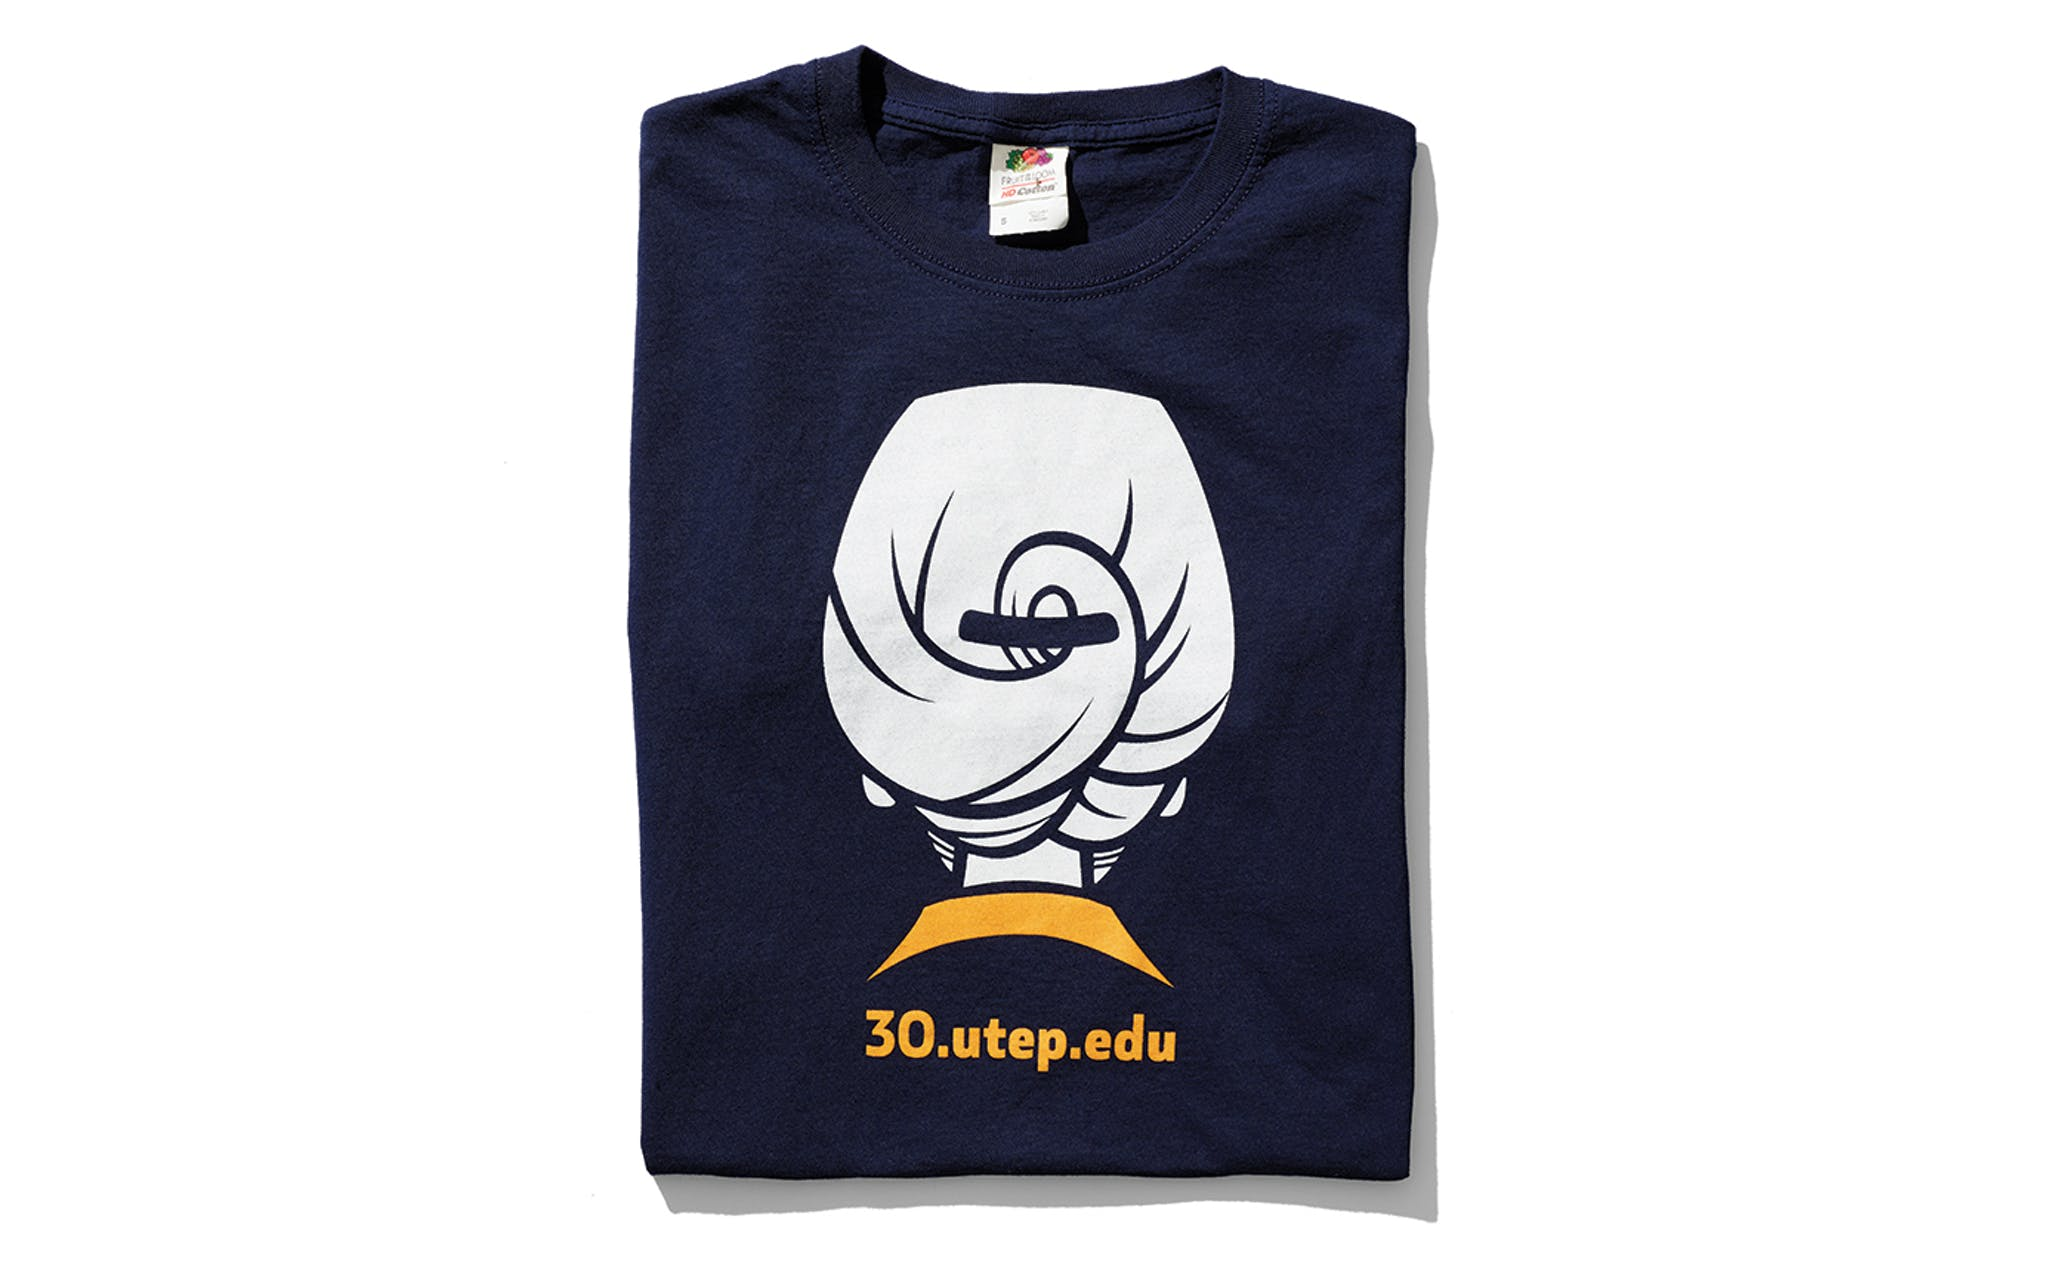 """2018 """"I really like this shirt celebrating my thirty years at UTEP. It's funny, and I like that because I believe that we shouldn't take ourselves too seriously. I try very hard to show students that I am not impressed by my own importance. I'm human and humble, just like them."""""""